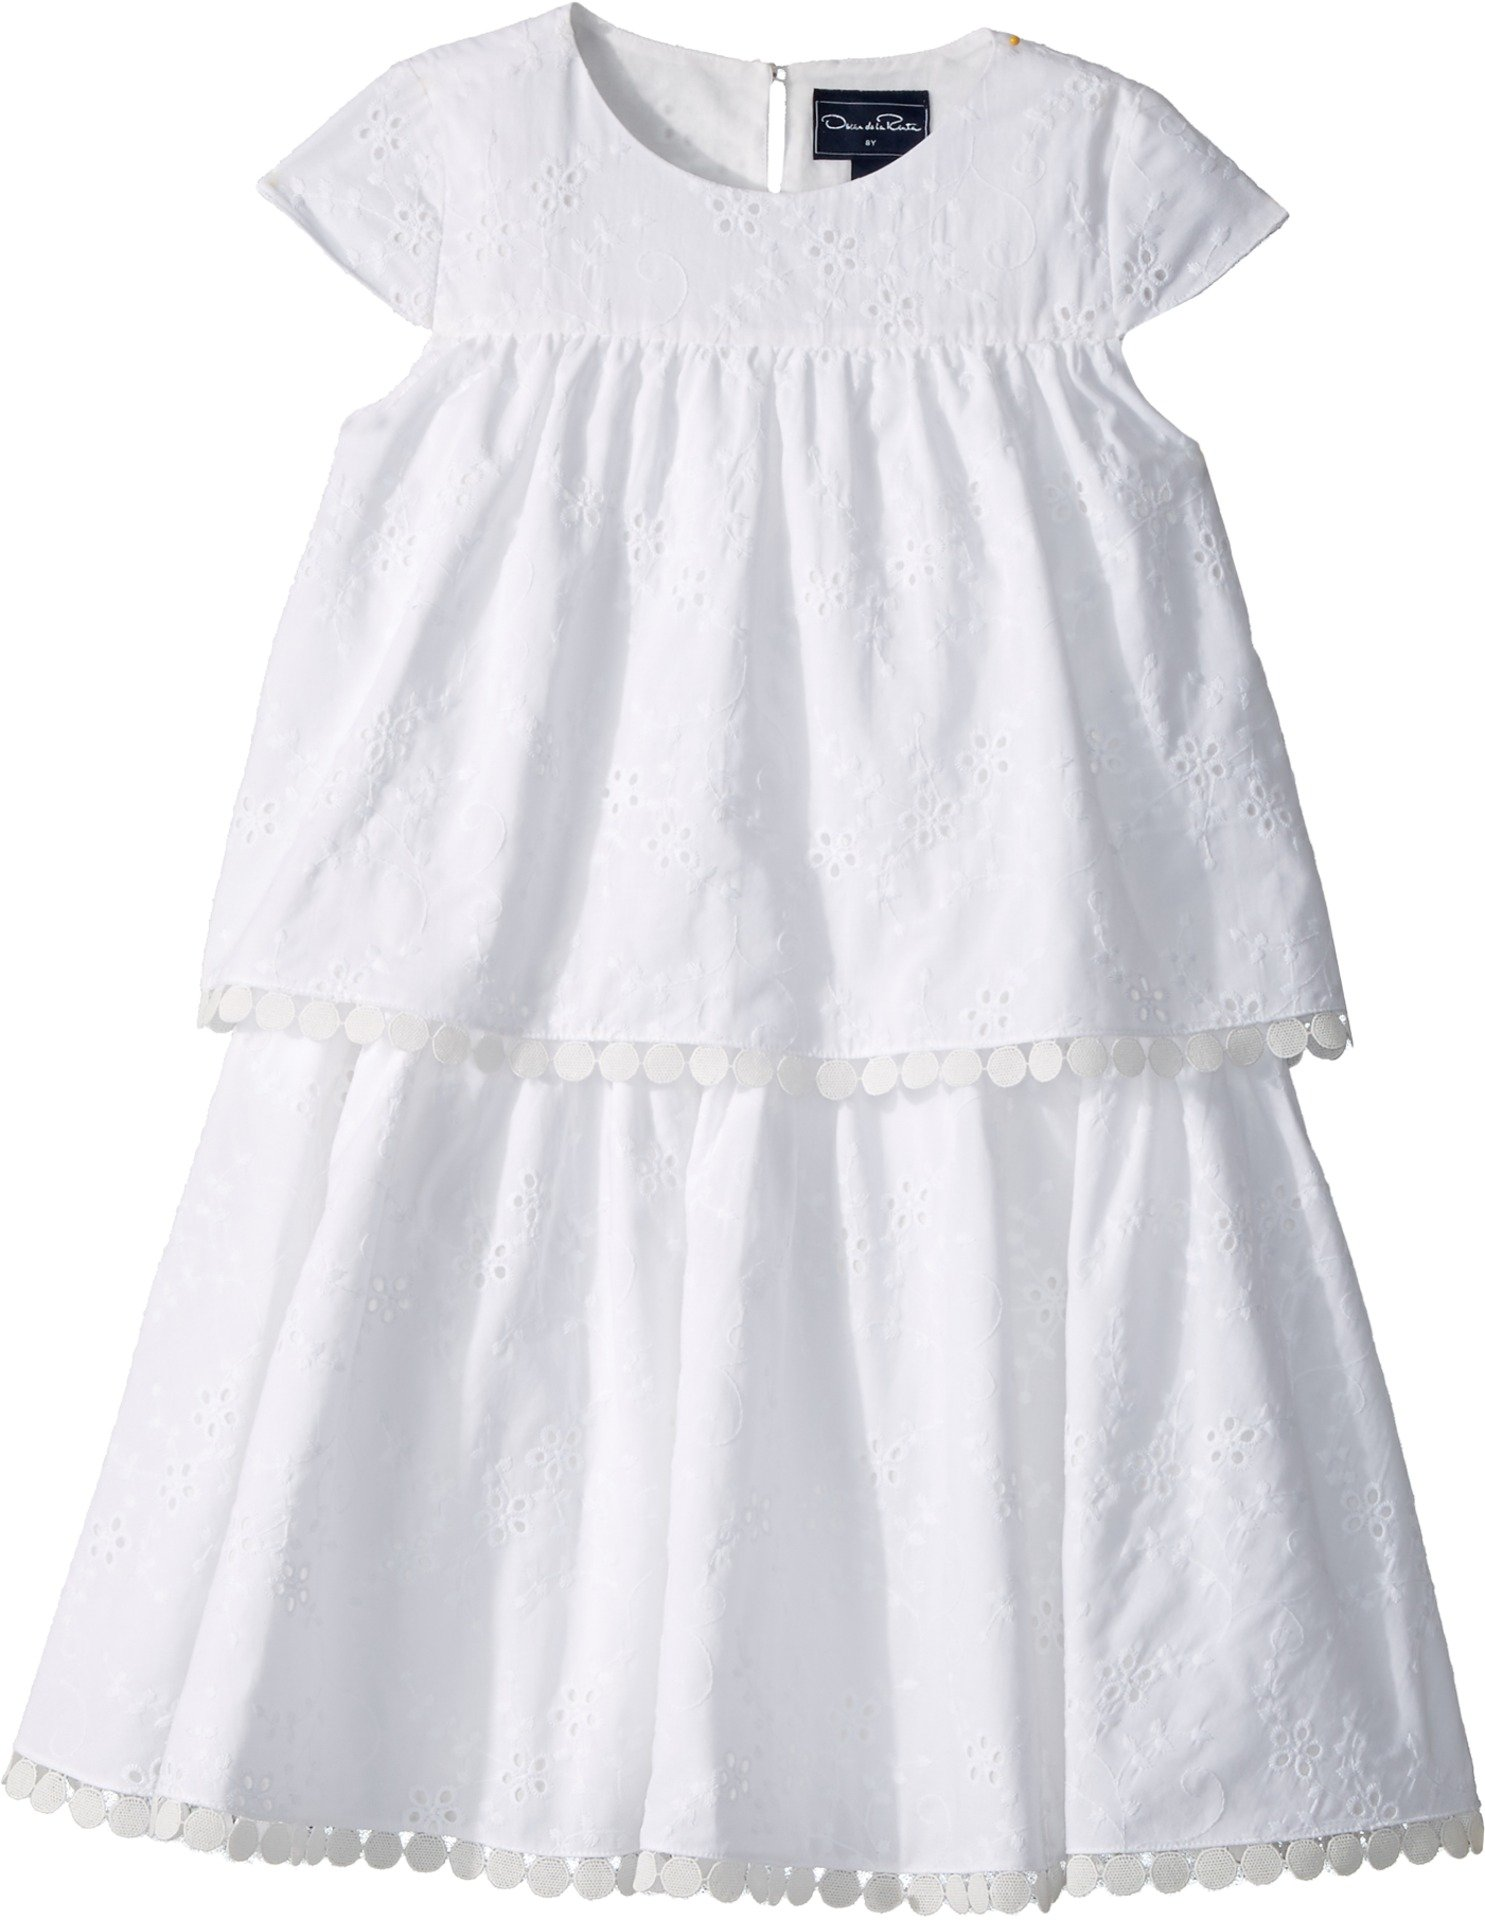 Oscar de la Renta Childrenswear Baby Girl's Cotton Flower Eyelet Tiered Dress (Toddler/Little Kids/Big Kids) White 8 by Oscar de la Renta (Image #1)